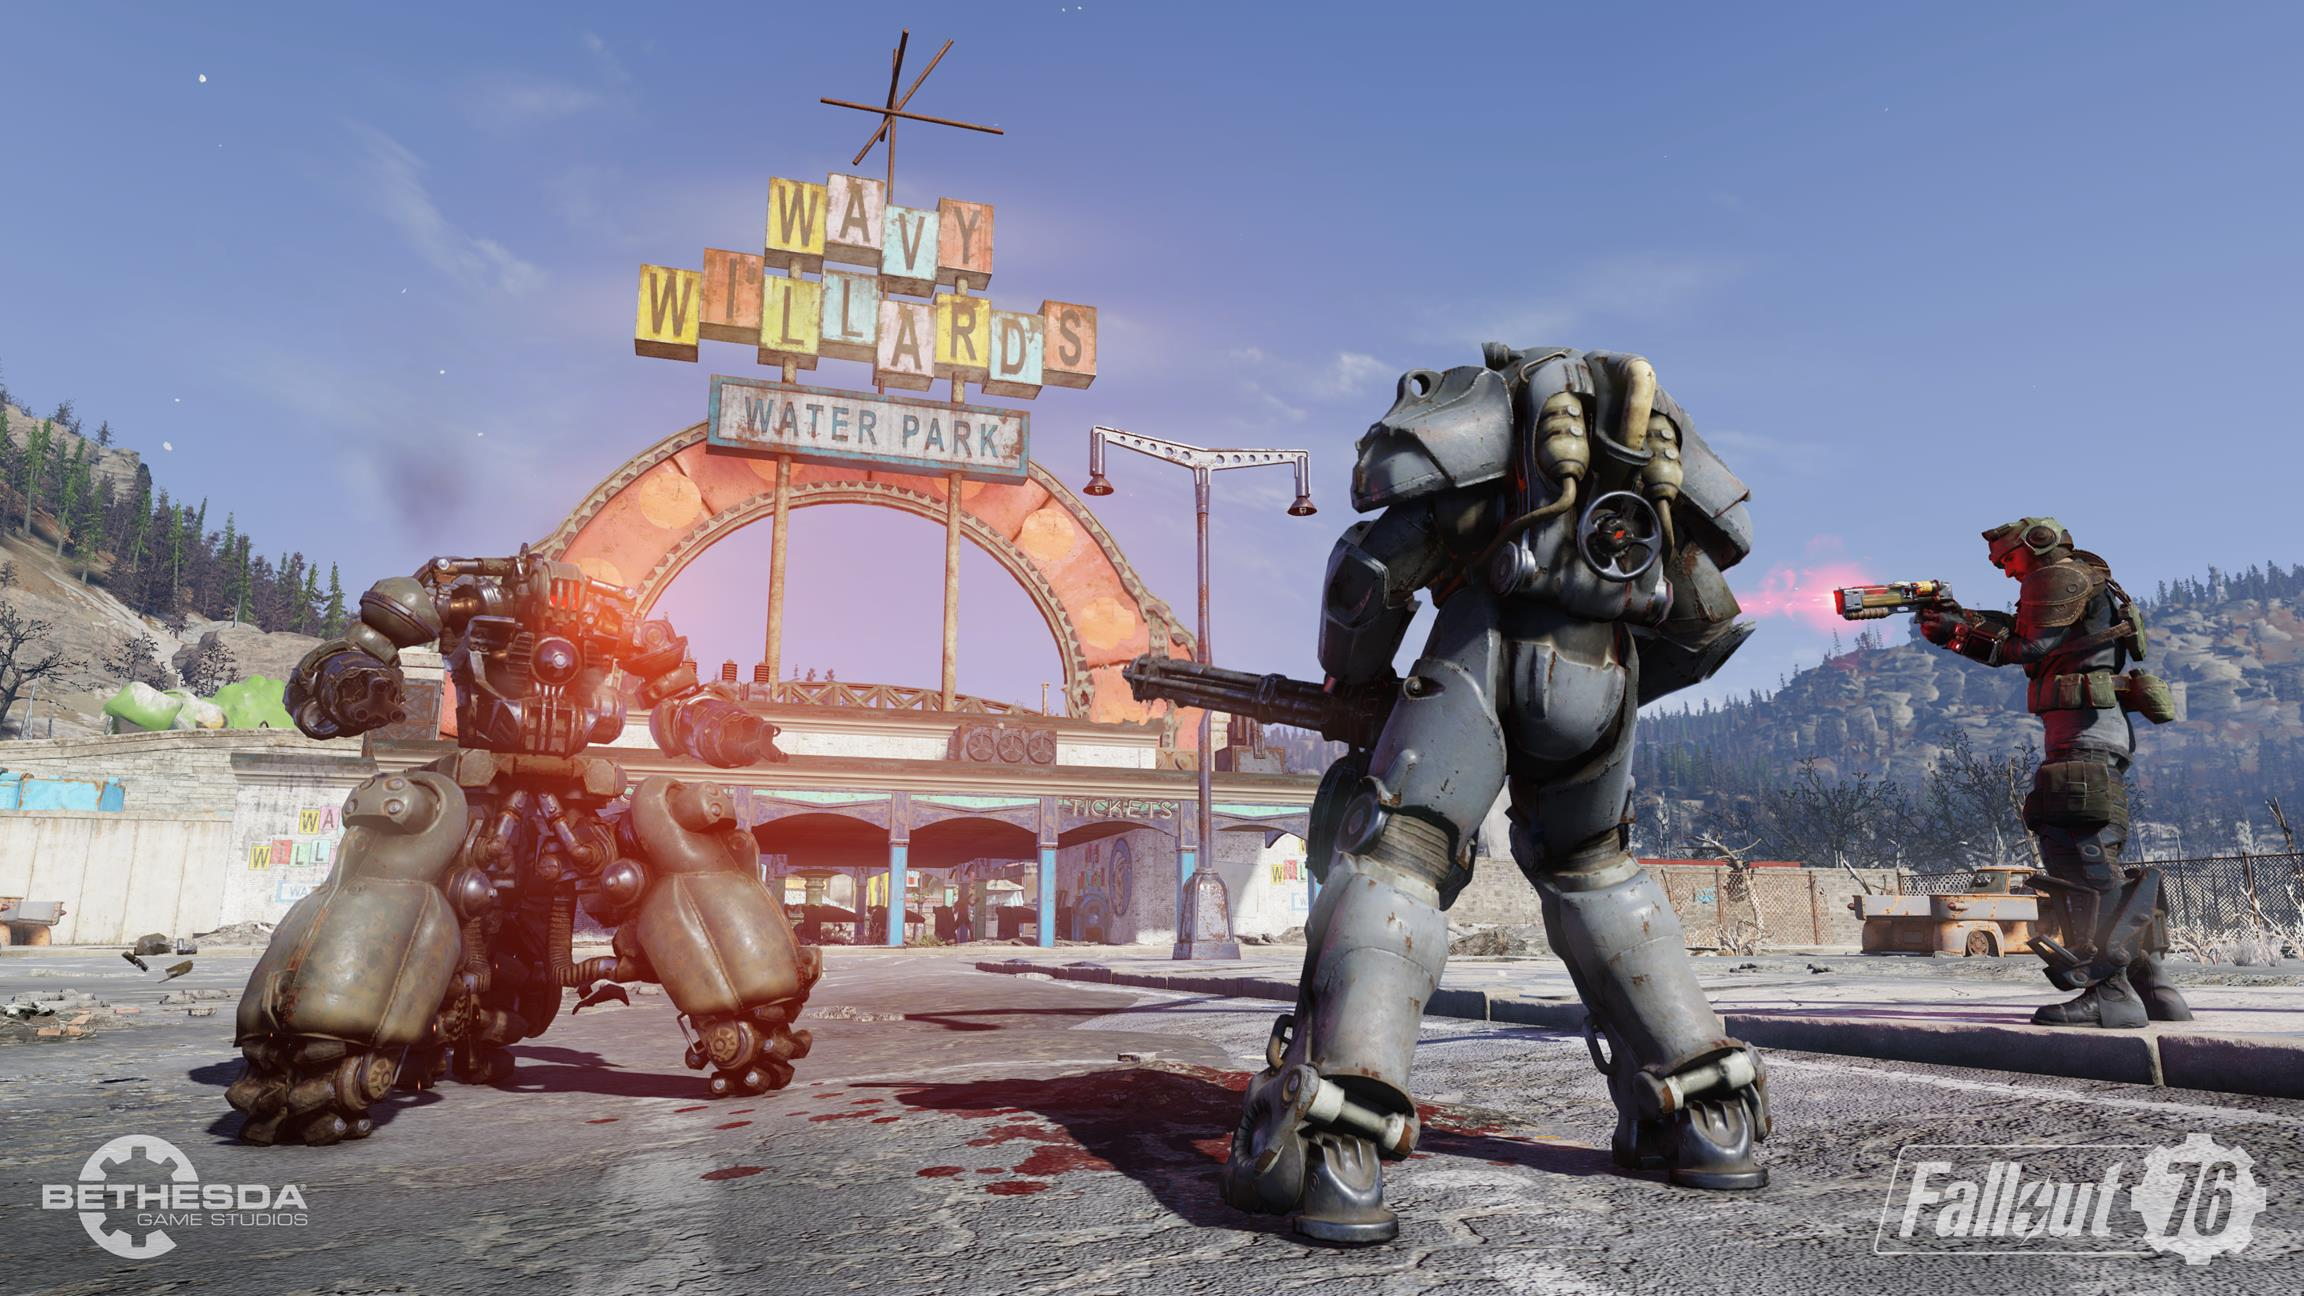 Fallout 76 Power Armor Stats For Ultracite X 01 Prototype X 01 T 60 T51b T45 Excavator Raider